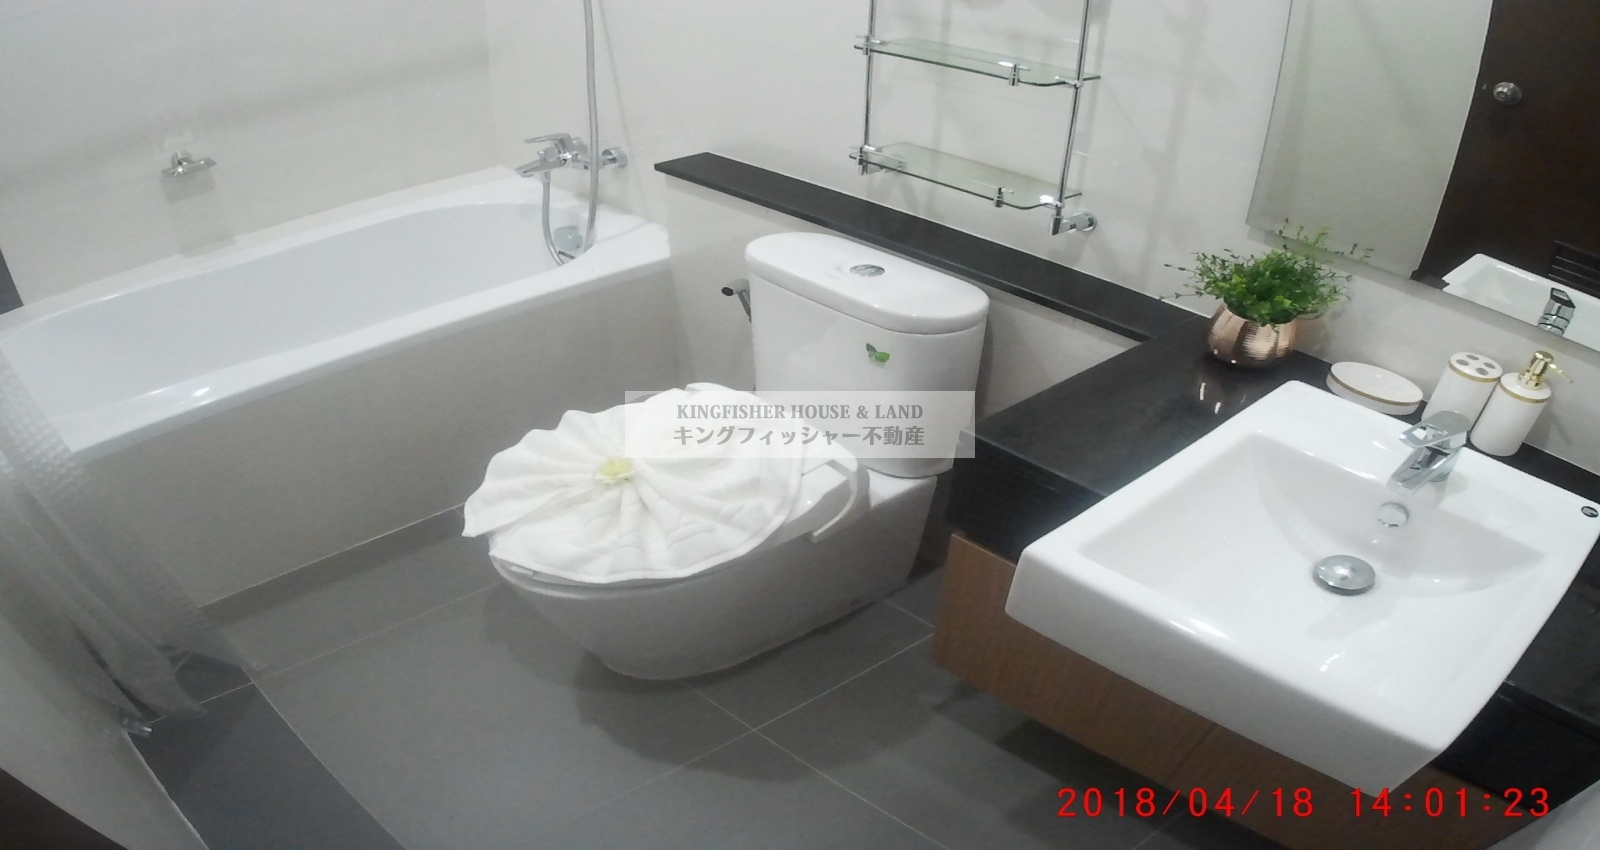 1 Bedrooms, Condominium, For Rent, 1 Bathrooms, Listing ID 1258, Sriracha, Thailand, 20110,